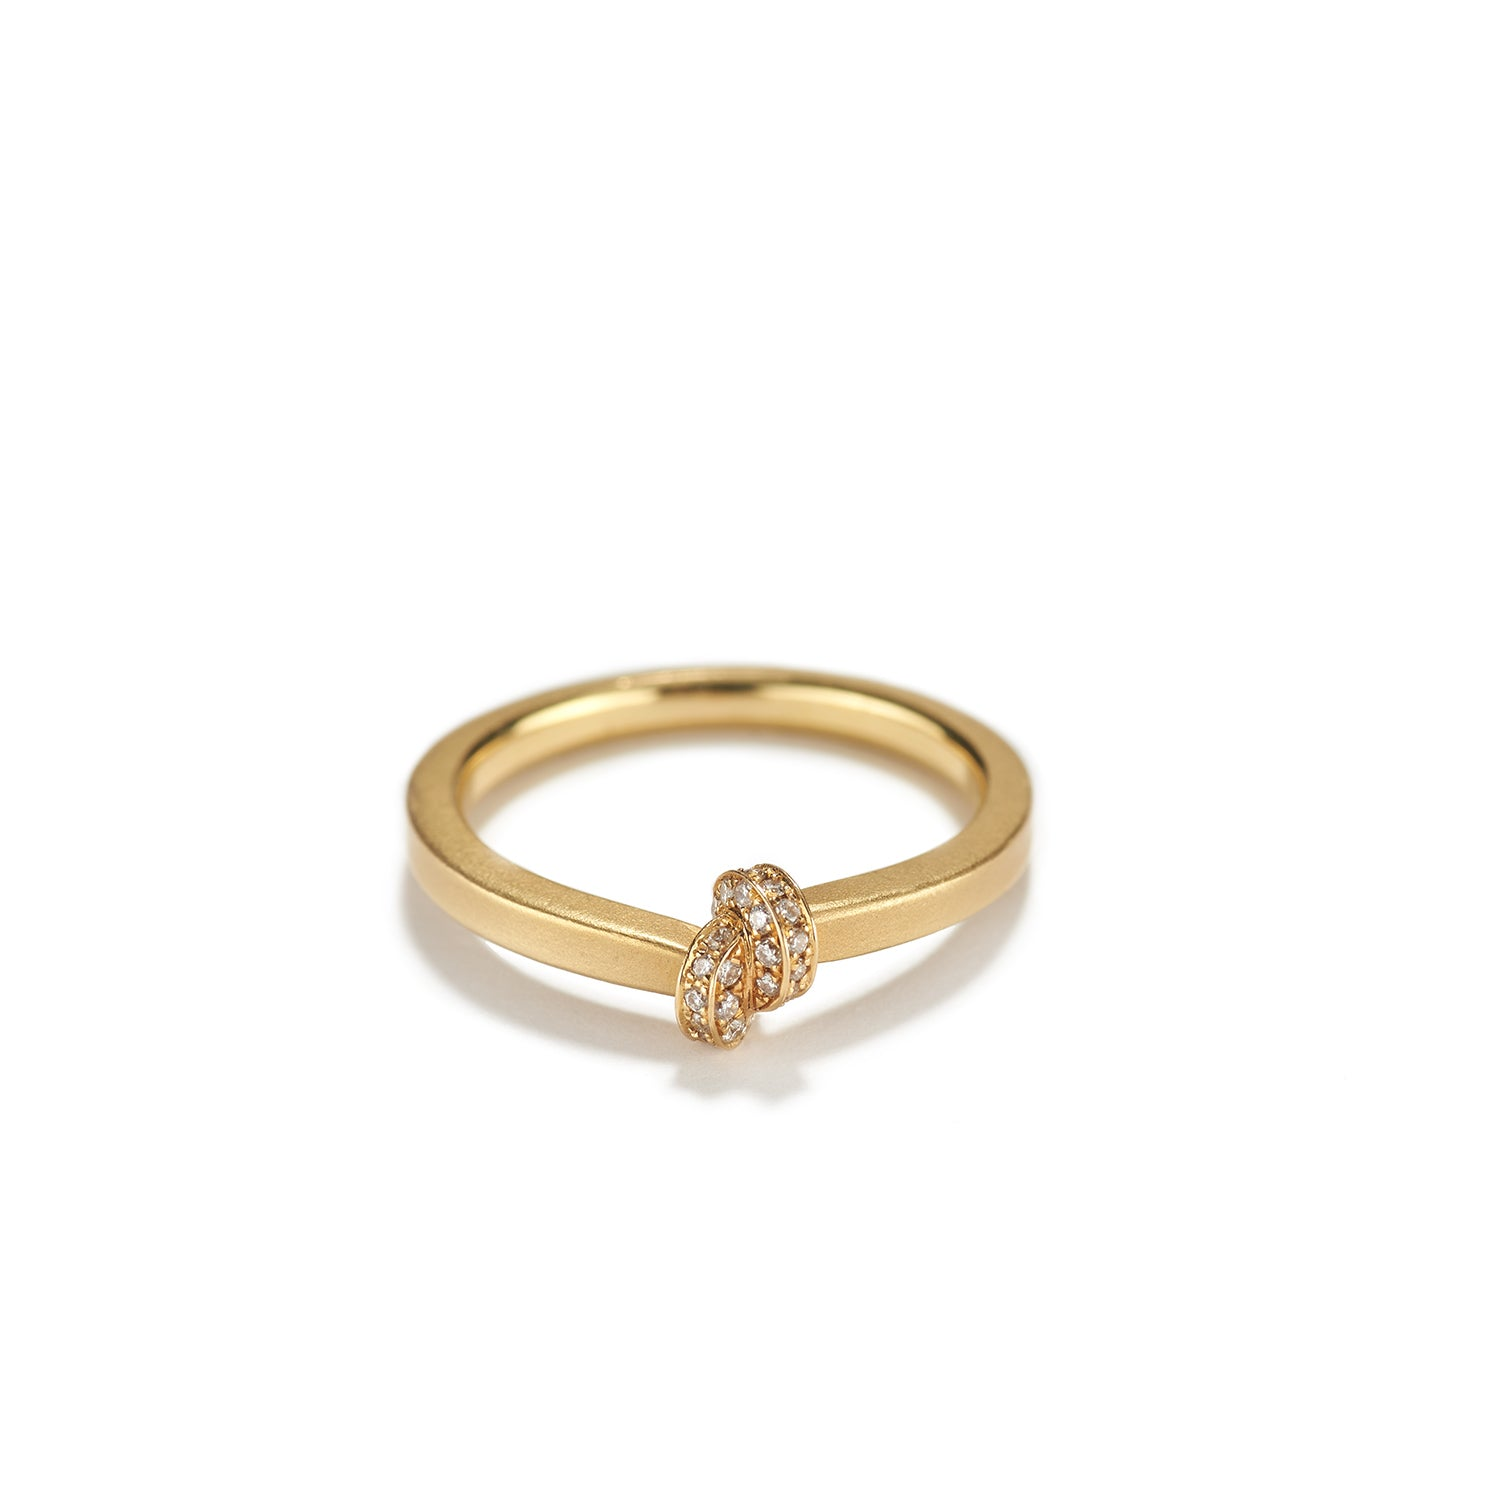 Gold With Diamond Knot Ring 2 5mm By Oliver Schmidt Diamond Gold Oliver Schmidt Ring Season Of Gratitude Yellow Gold